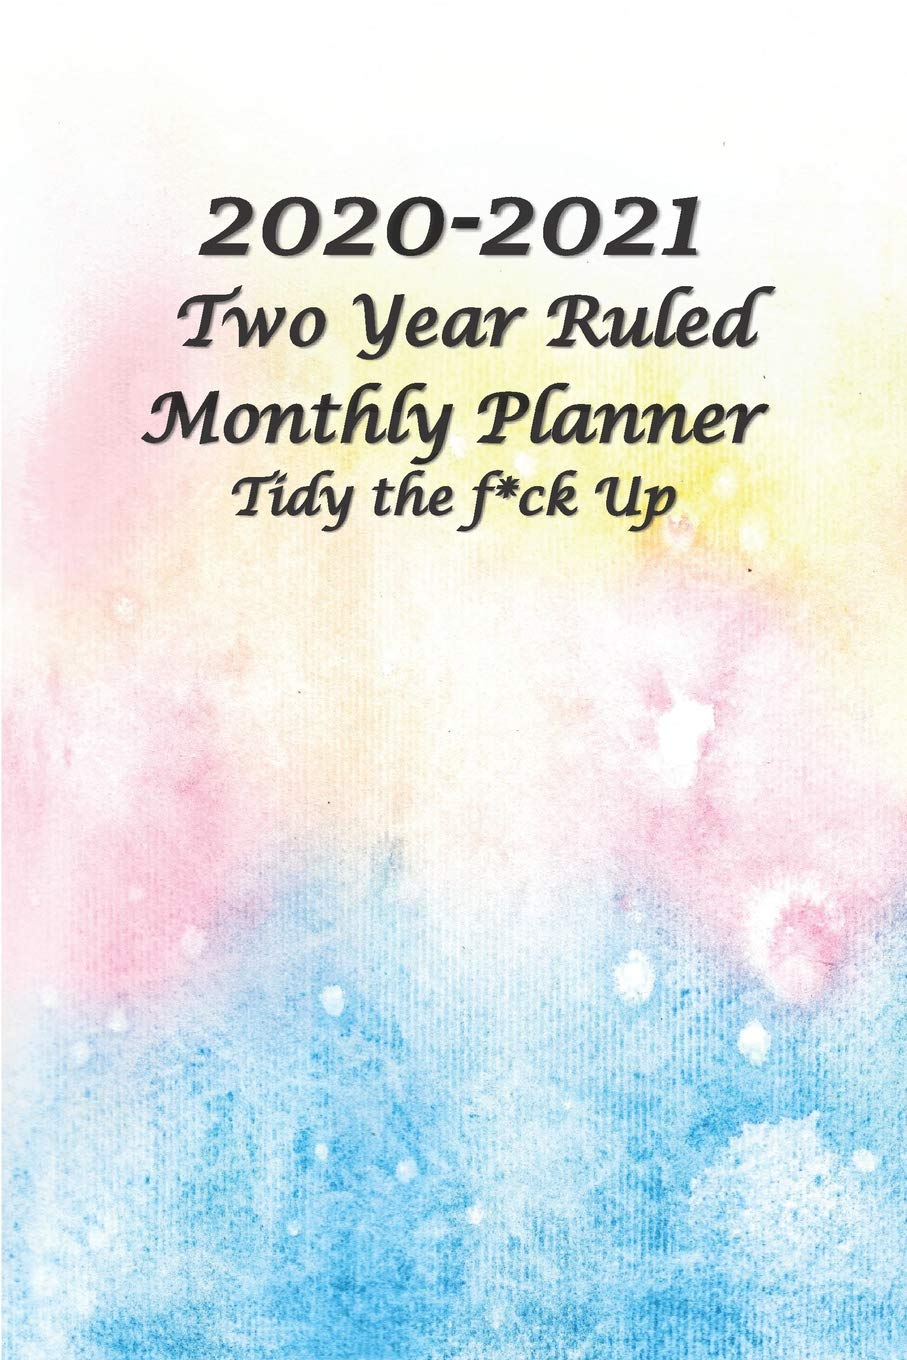 2020-2021 Two Year Ruled Monthly Planner Tidy the F*ck Up ...